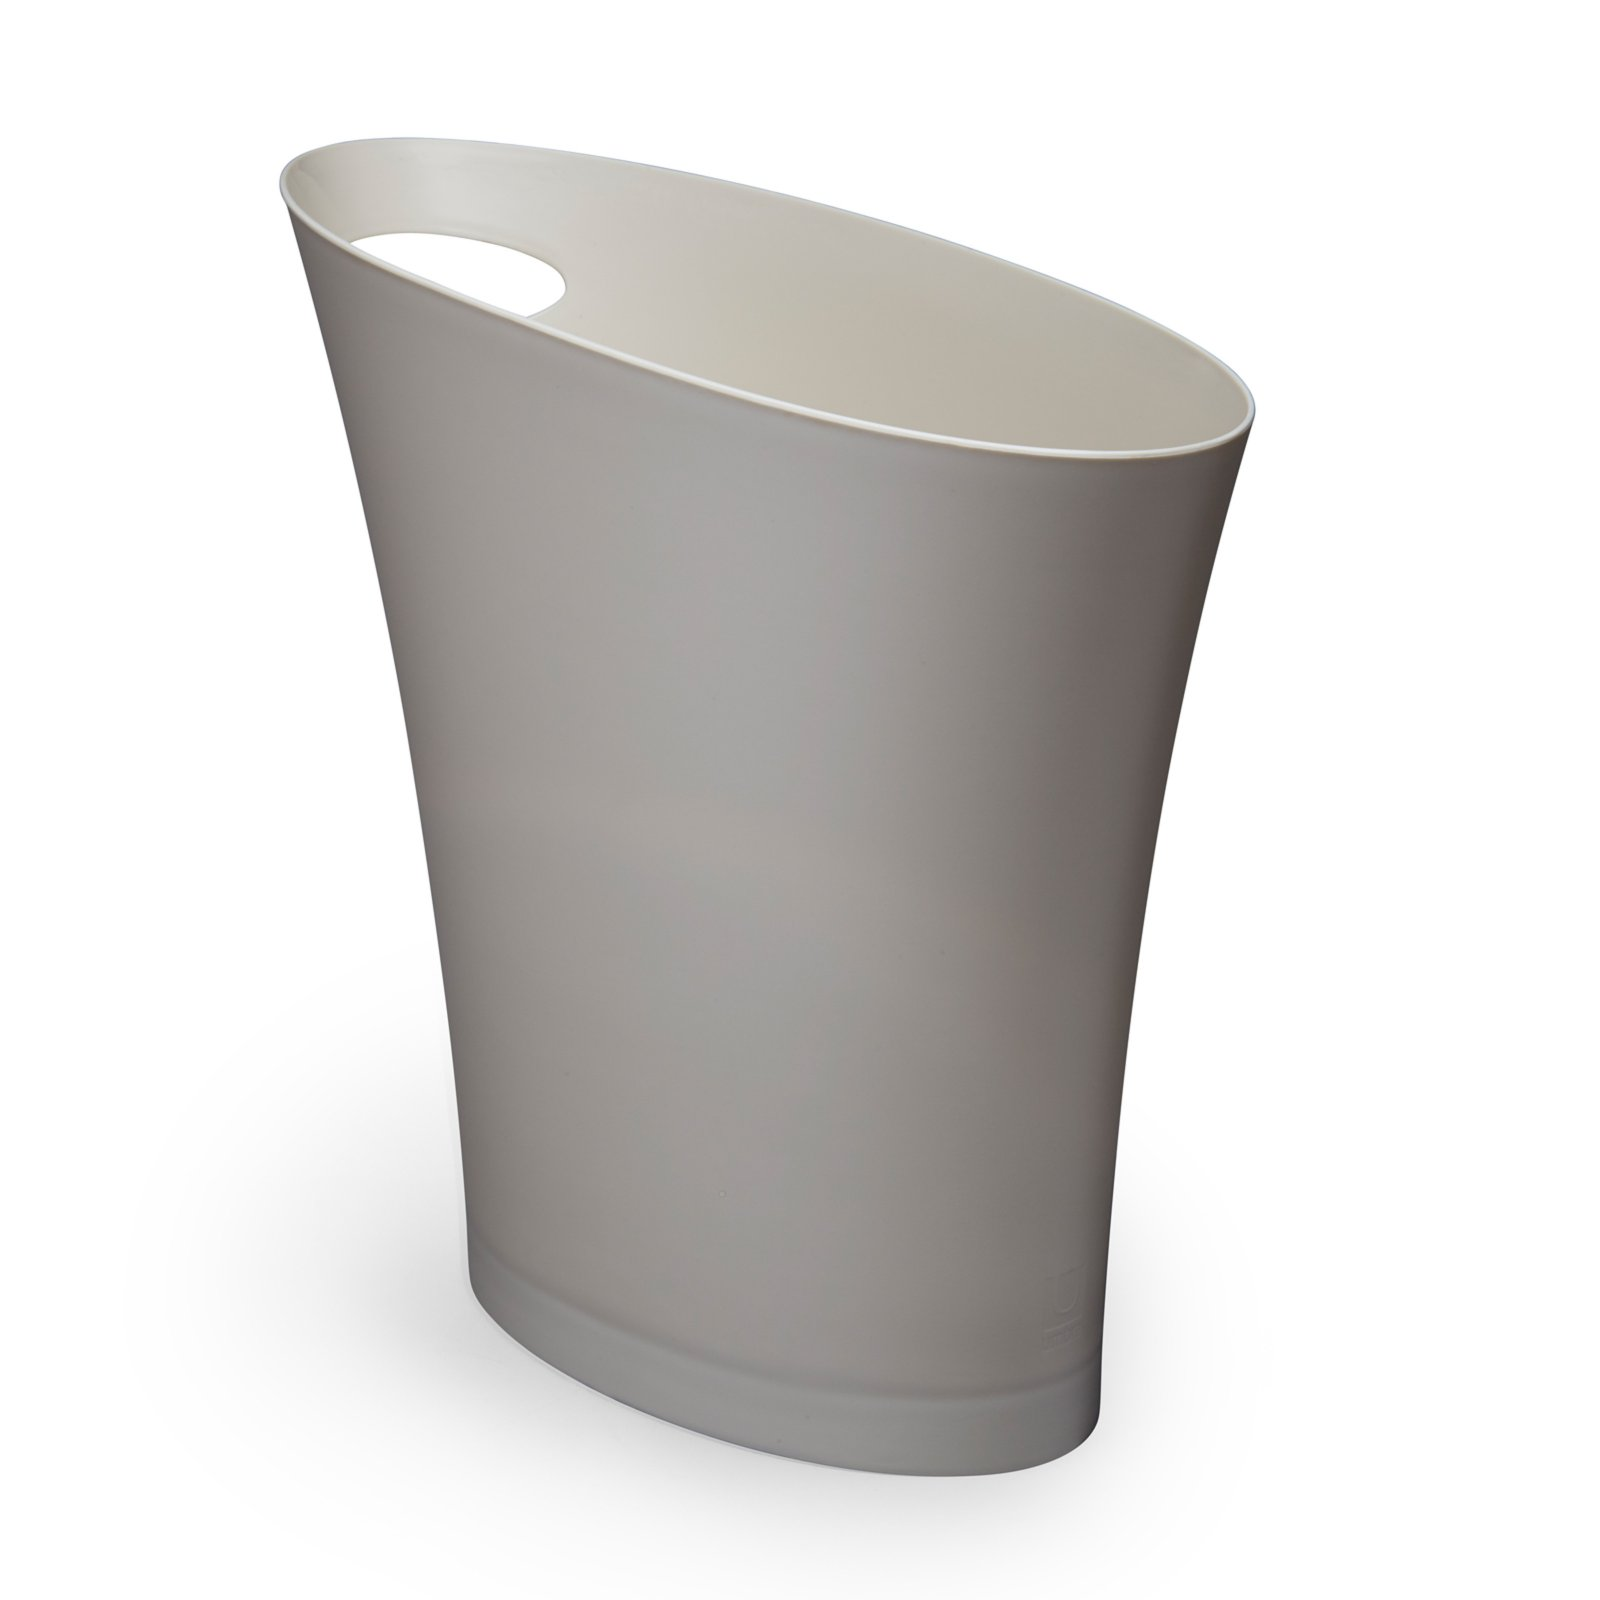 Umbra Skinny Trash Can by Umbra